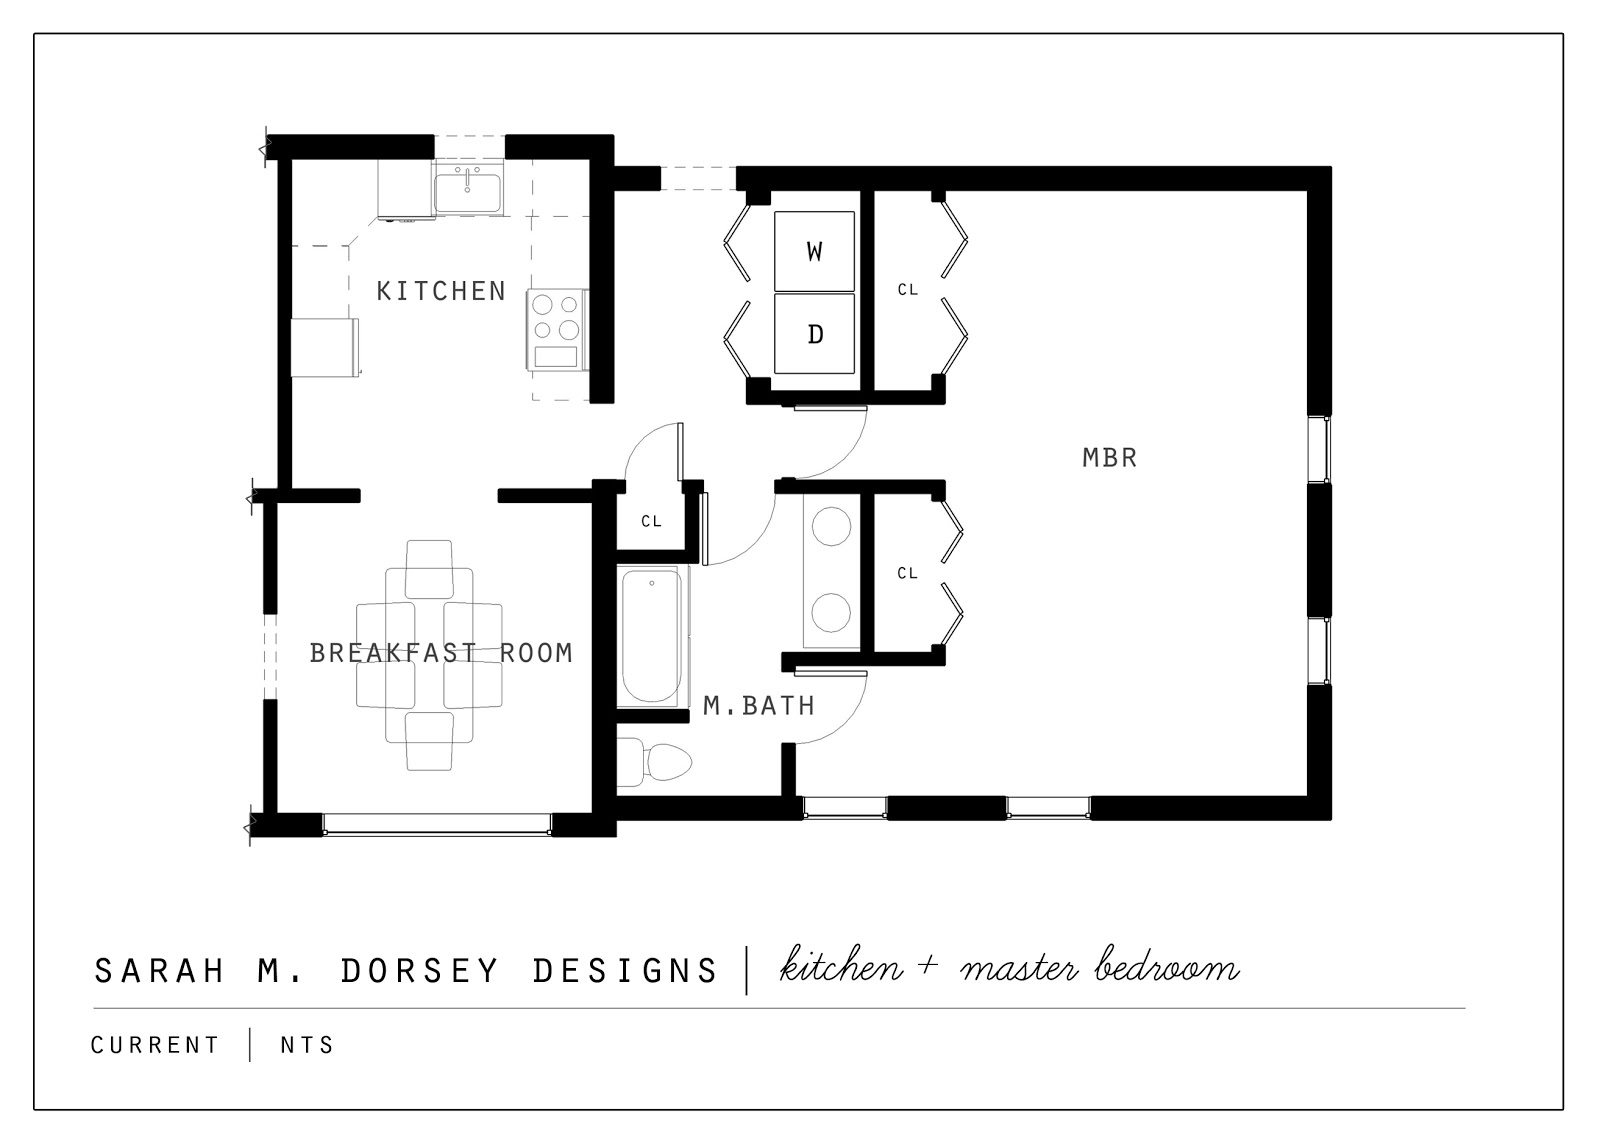 Proposed Kitchen And Master Suite Remodel